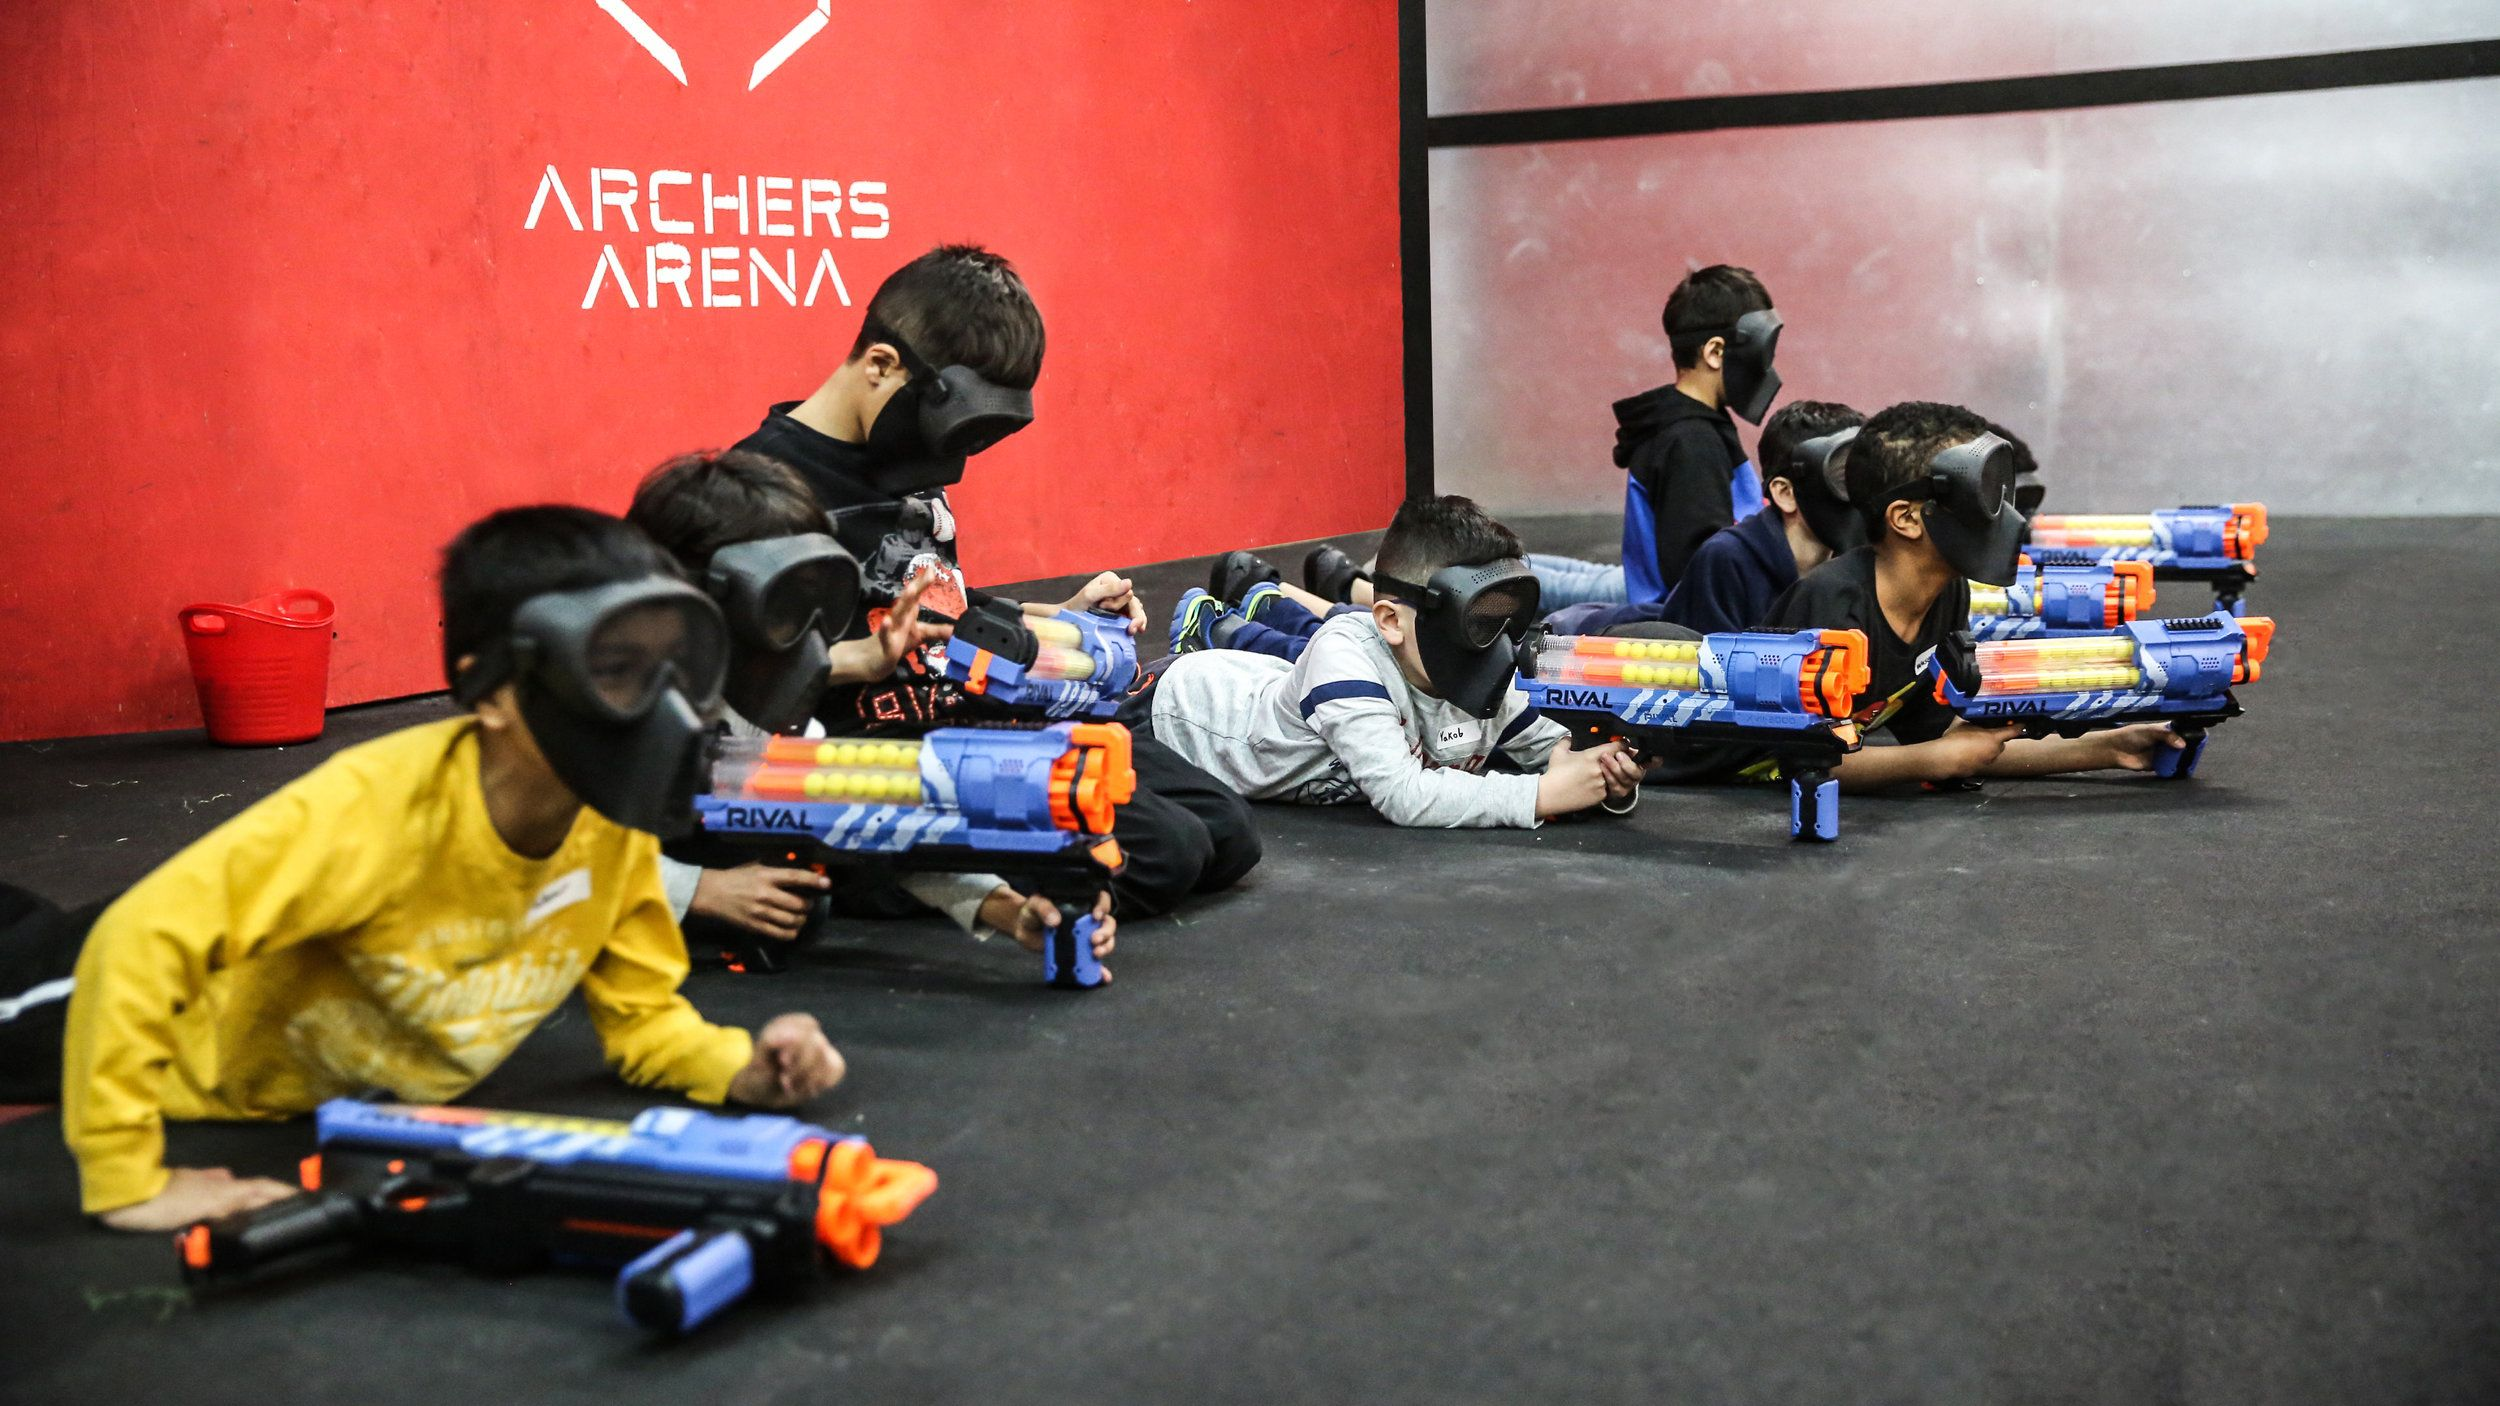 NERF WARS TORONTO NERF BATTLE BEST ARENA NERF STRONGARM